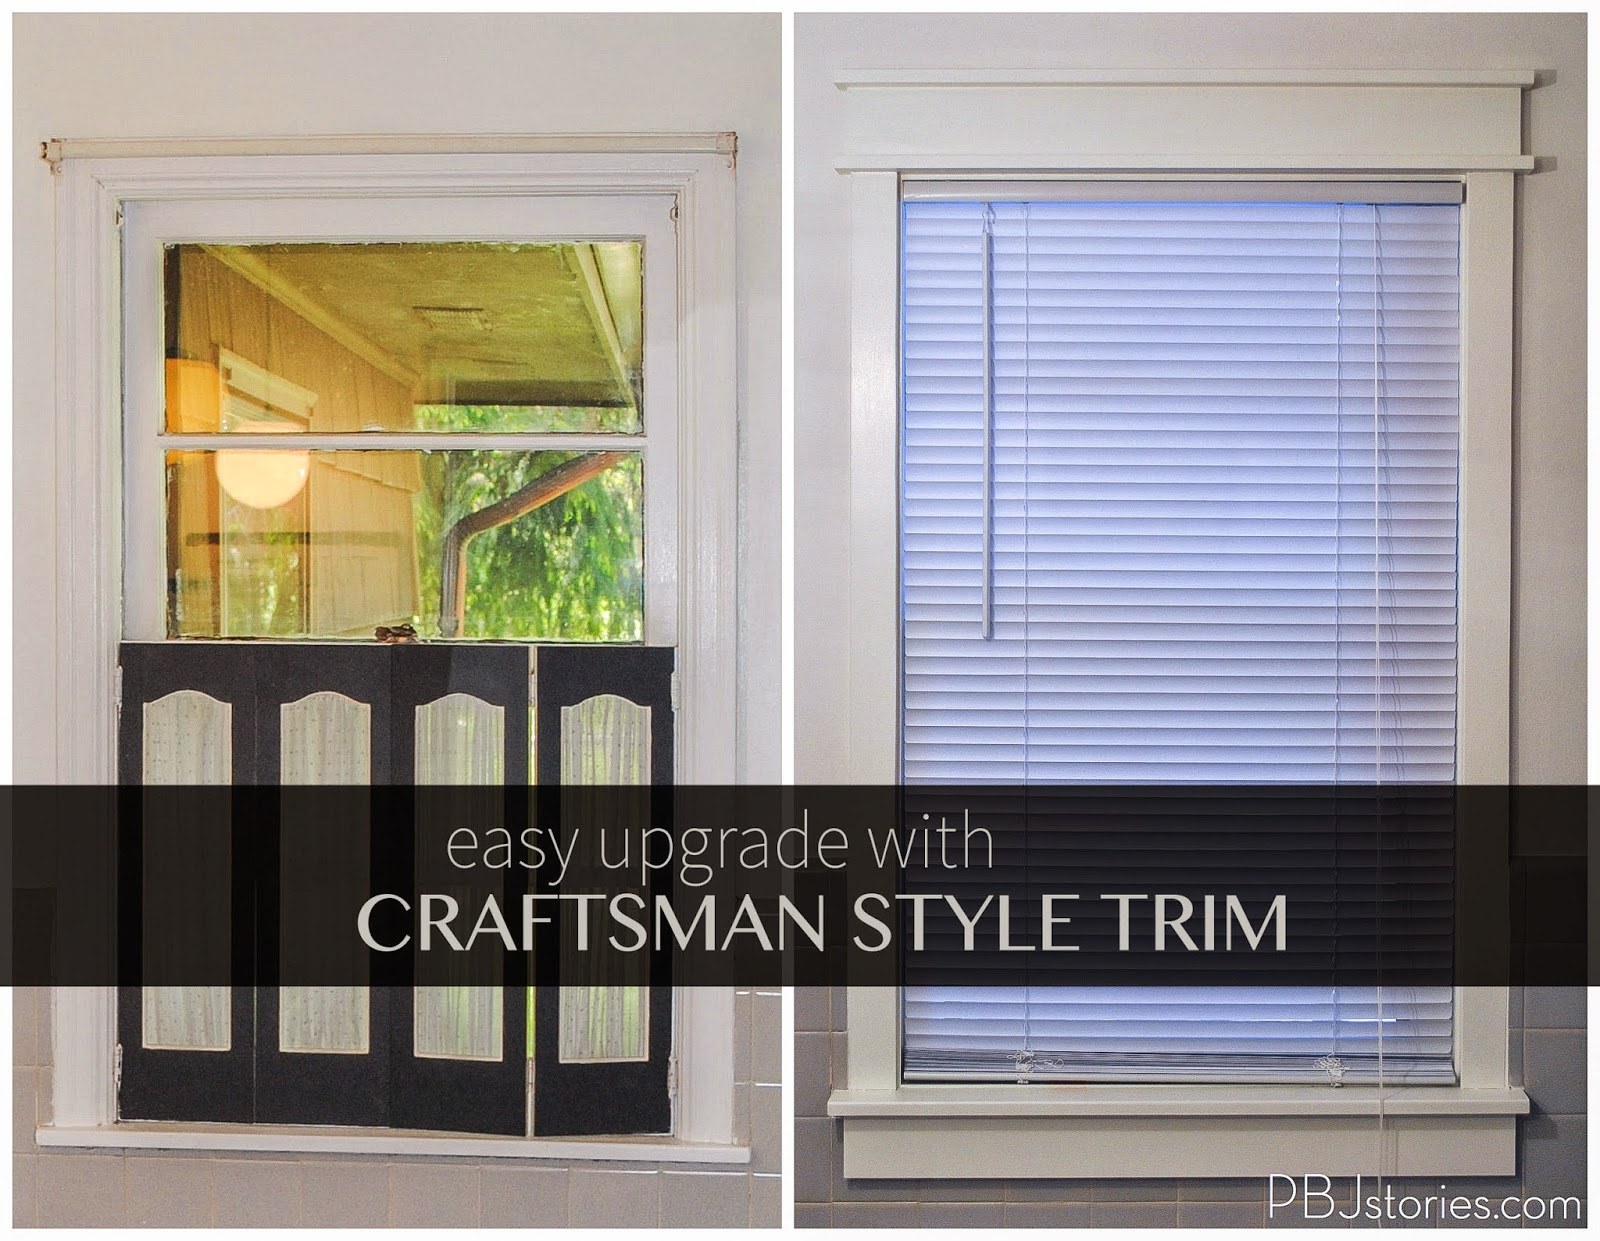 Craftsman Window Trim Pbjstories Updating Old Trim And Casings To Craftsman Style Pbjreno